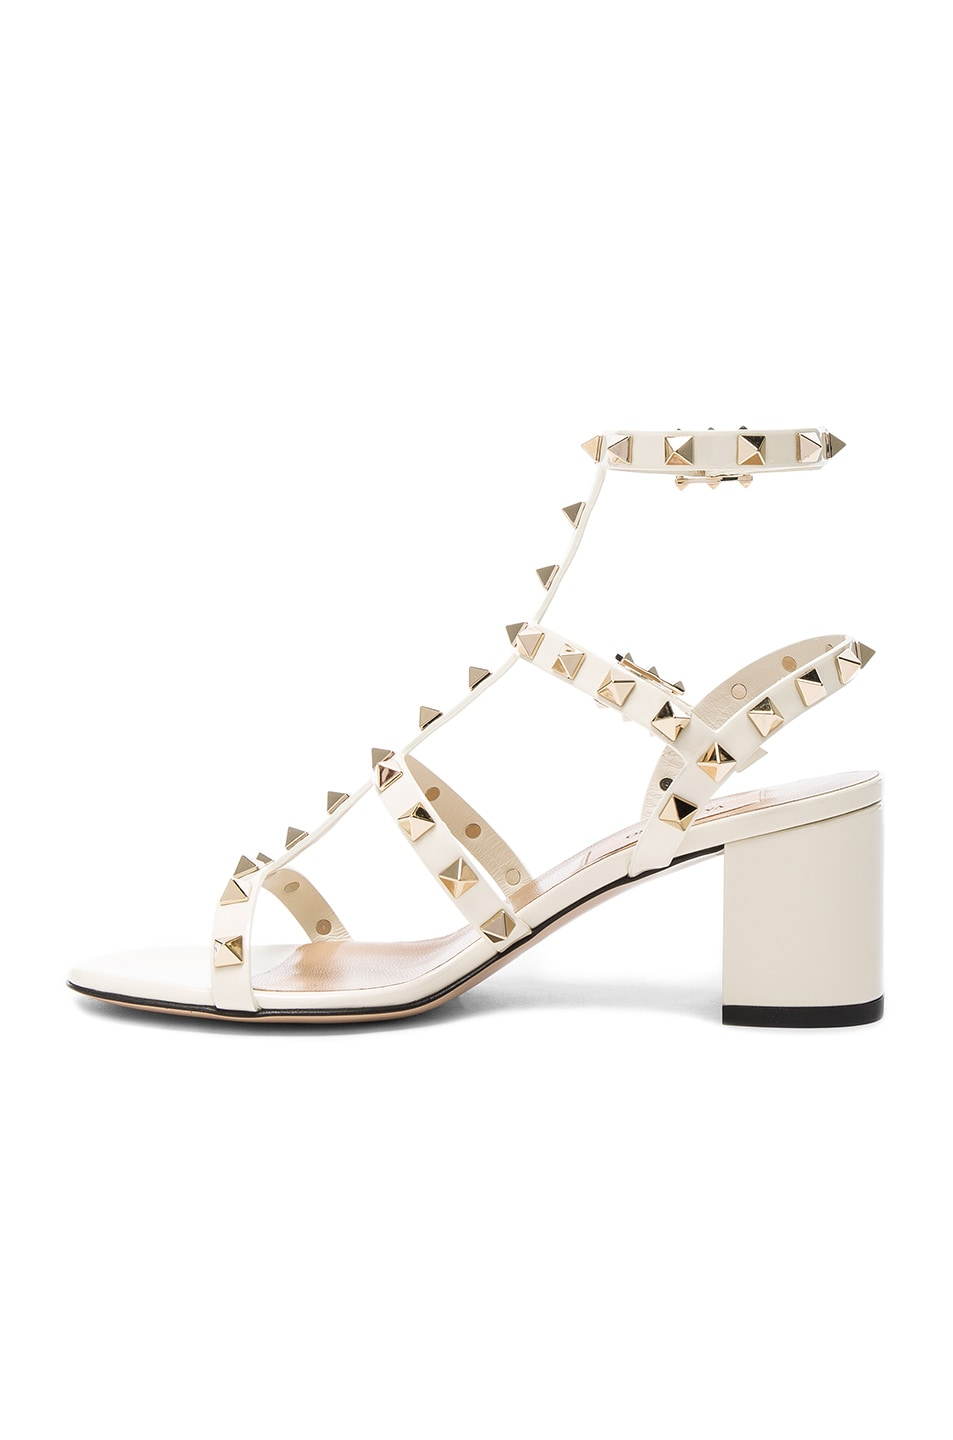 Image 5 of Valentino Patent Leather Rockstud Sandals in Light Ivory